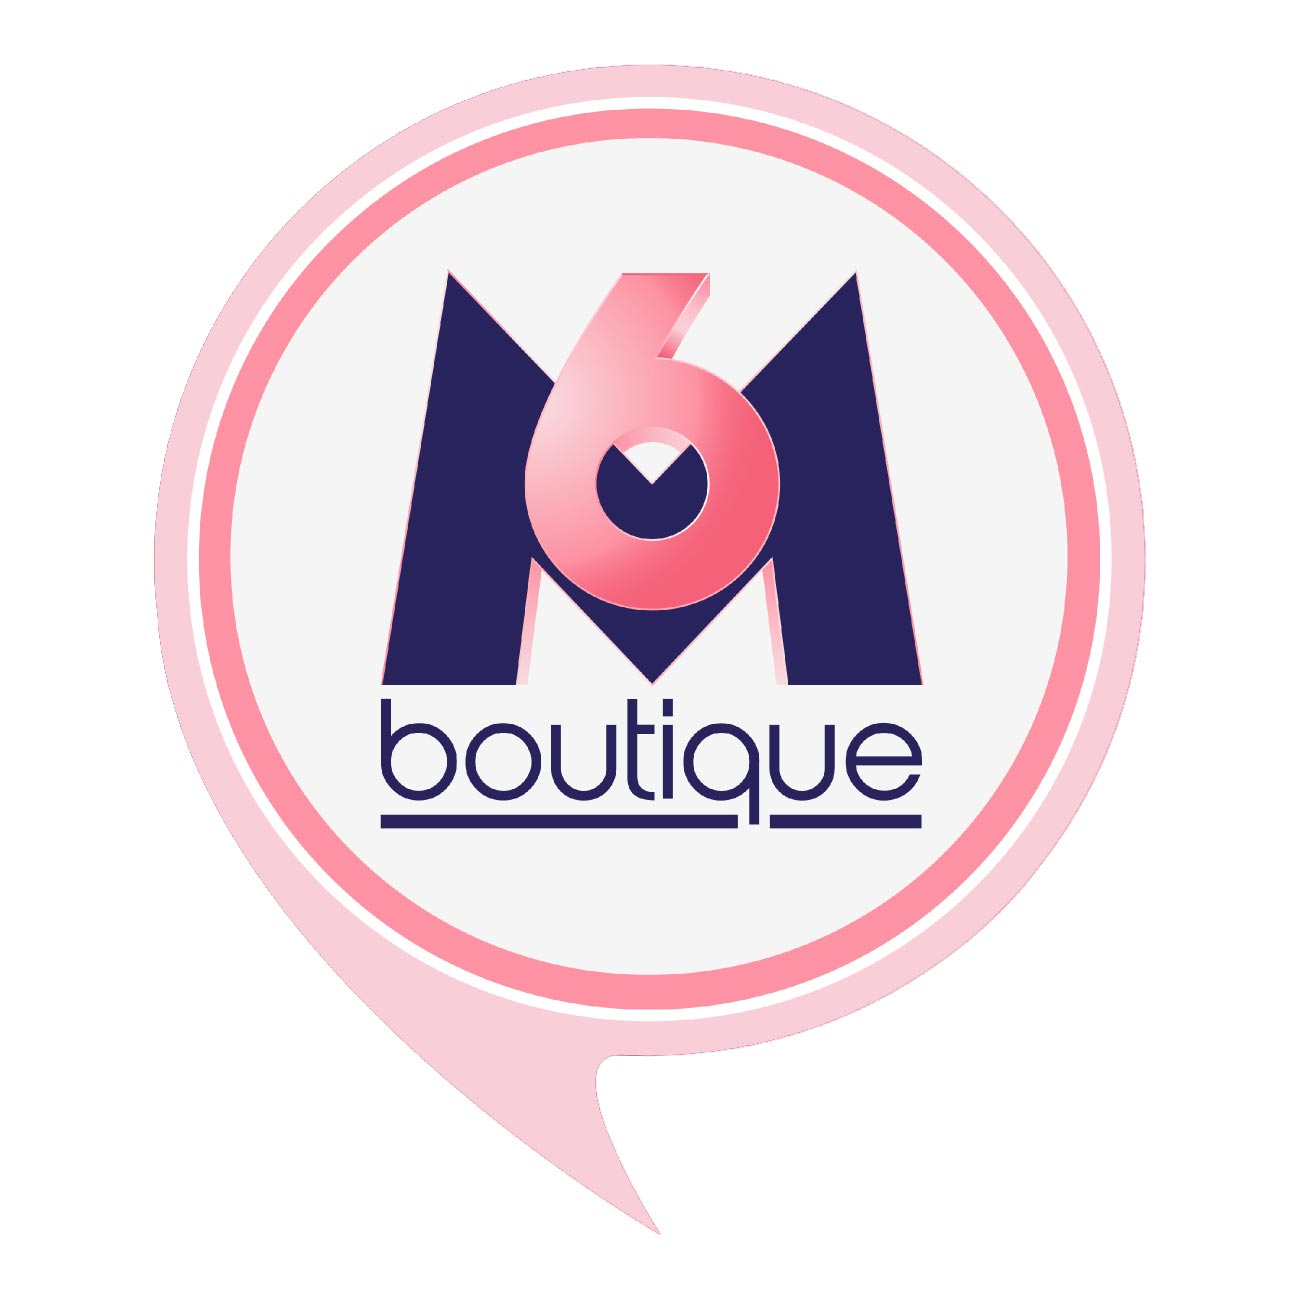 M6 Deco Replay M6 Boutique Direct Regarder M6 Boutique Live Sur Internet